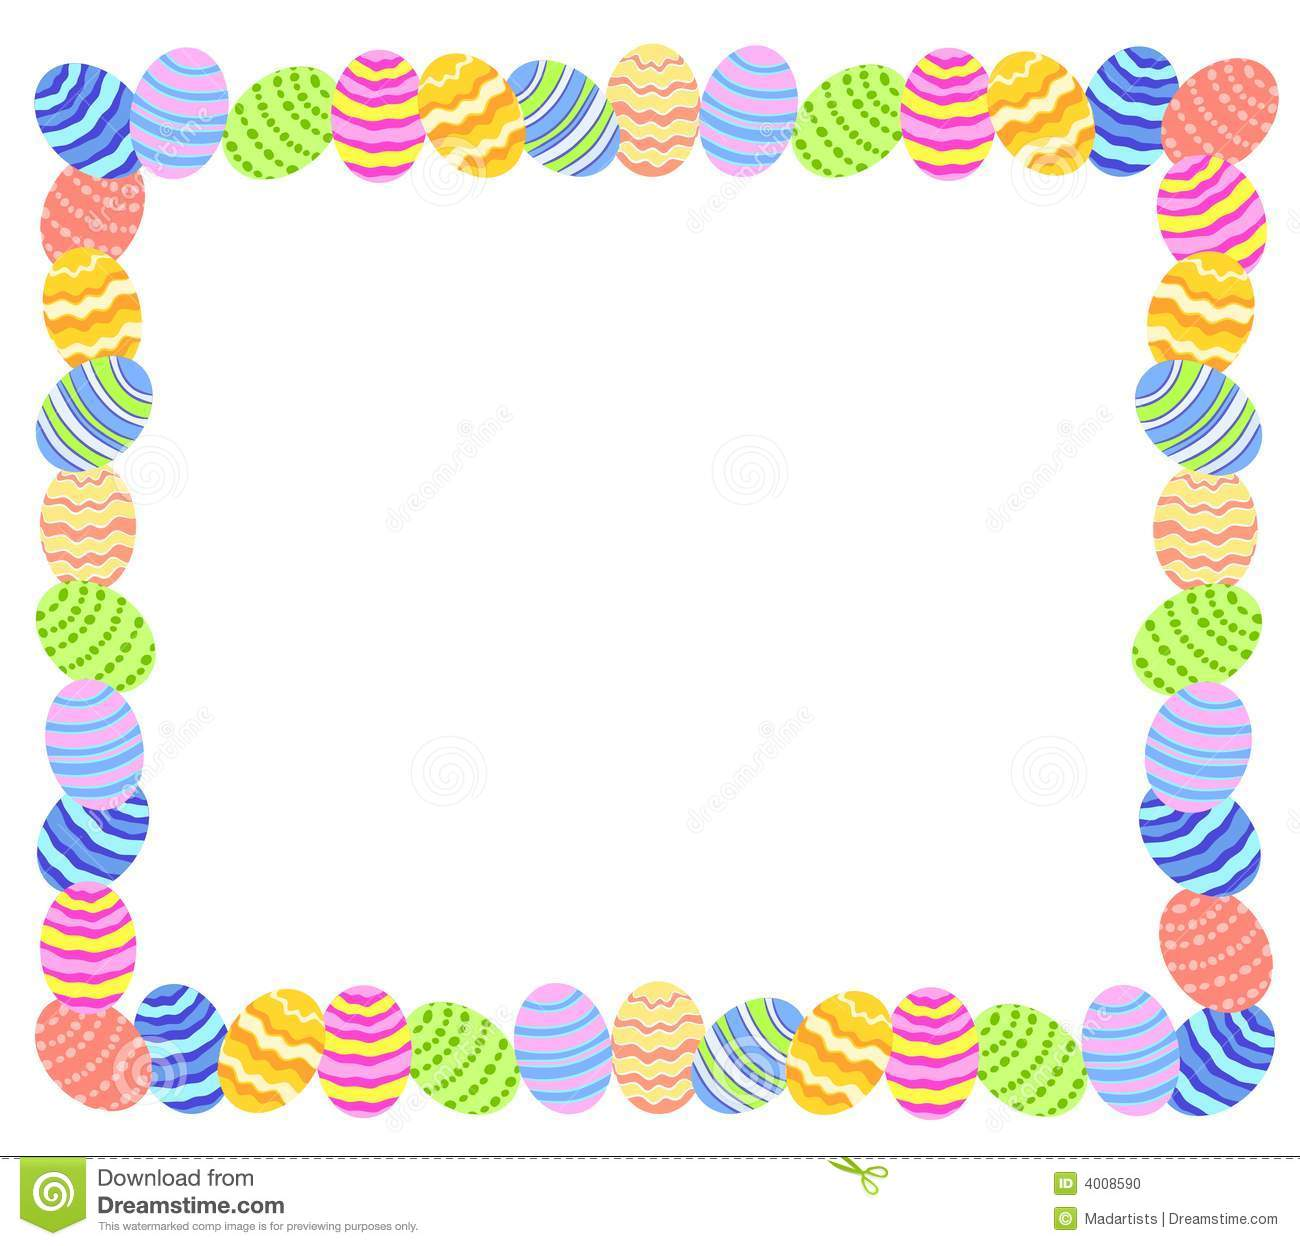 Free easter border clipart 2 » Clipart Station.